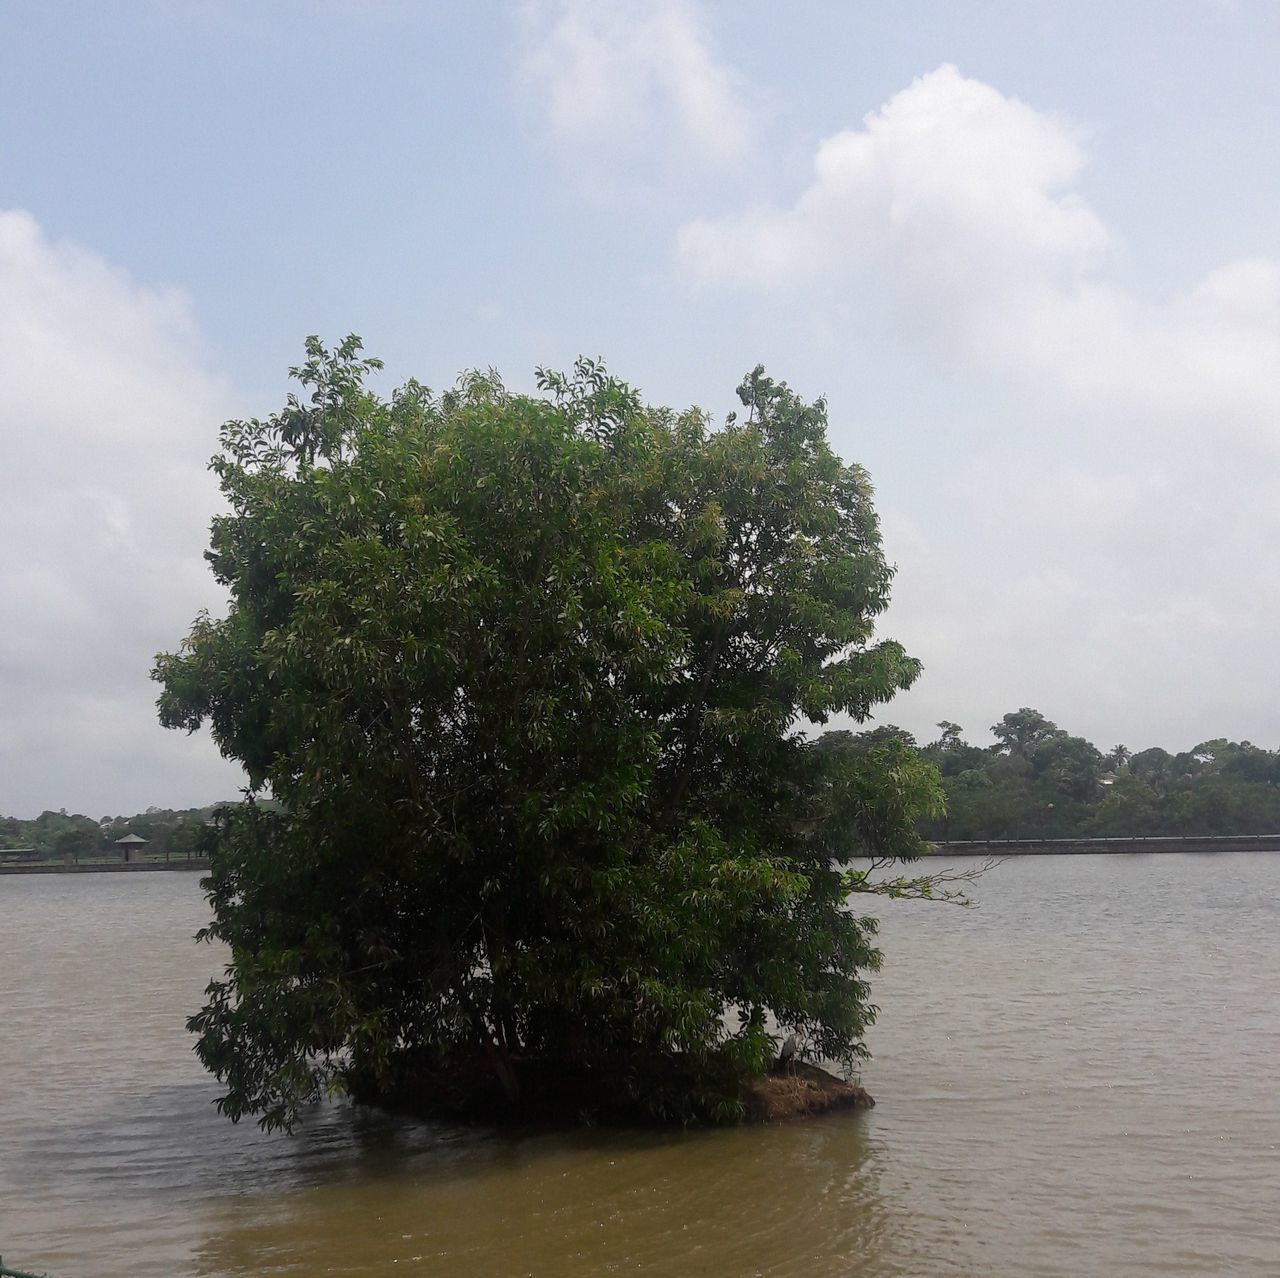 tree, sky, water, nature, cloud - sky, tranquil scene, tranquility, river, waterfront, no people, day, scenics, beauty in nature, growth, outdoors, plant